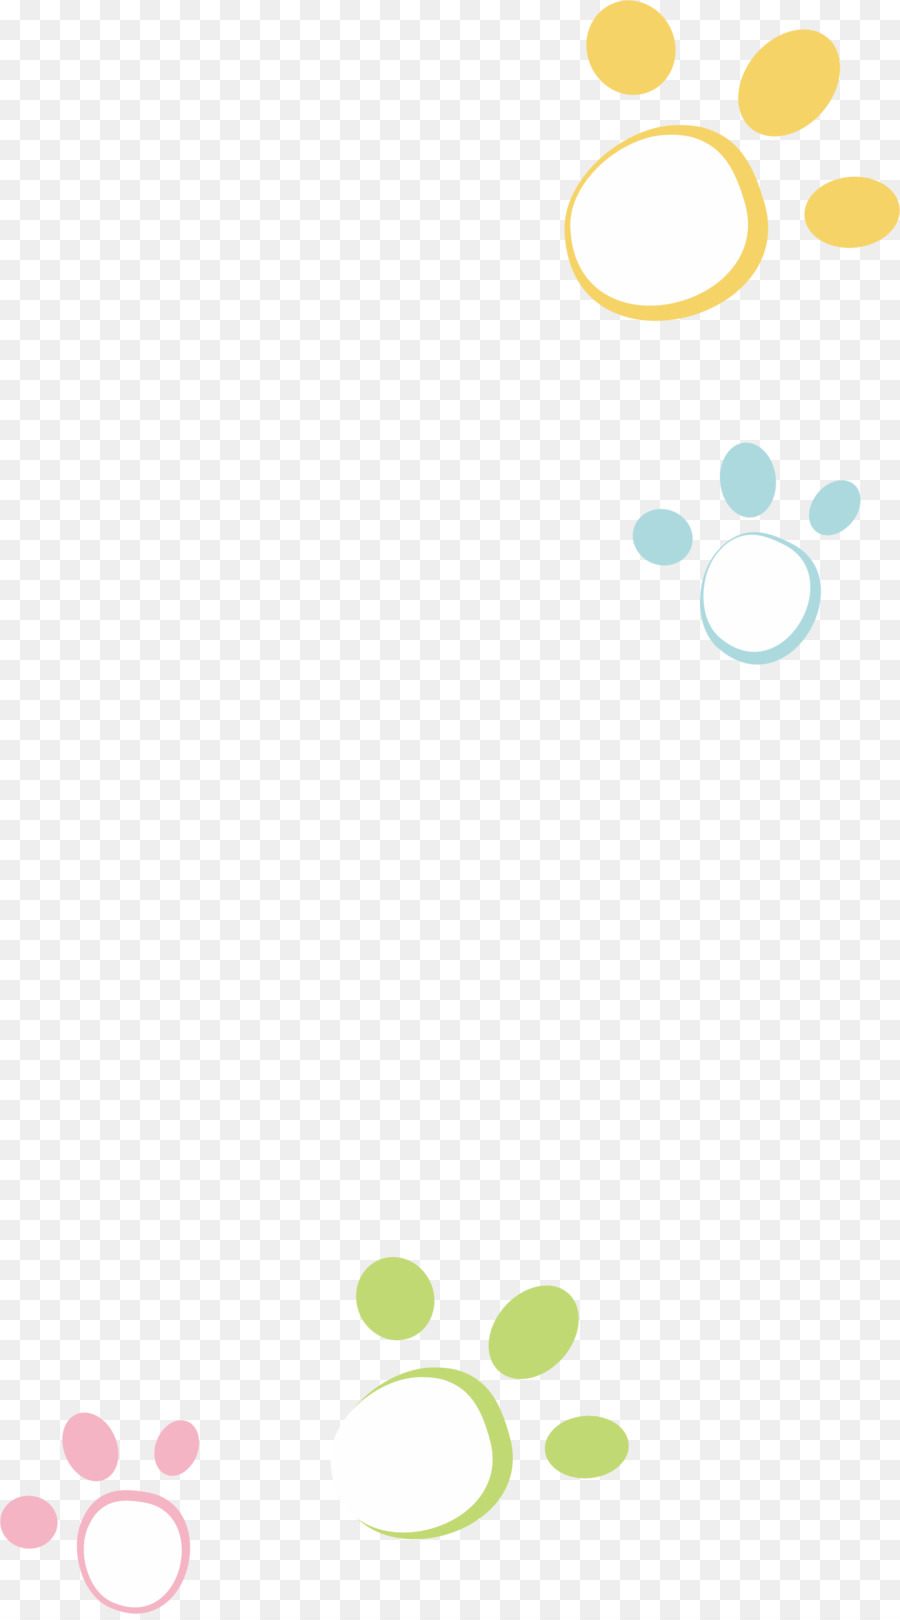 3d Circle Png 1634 2930 Free Transparent